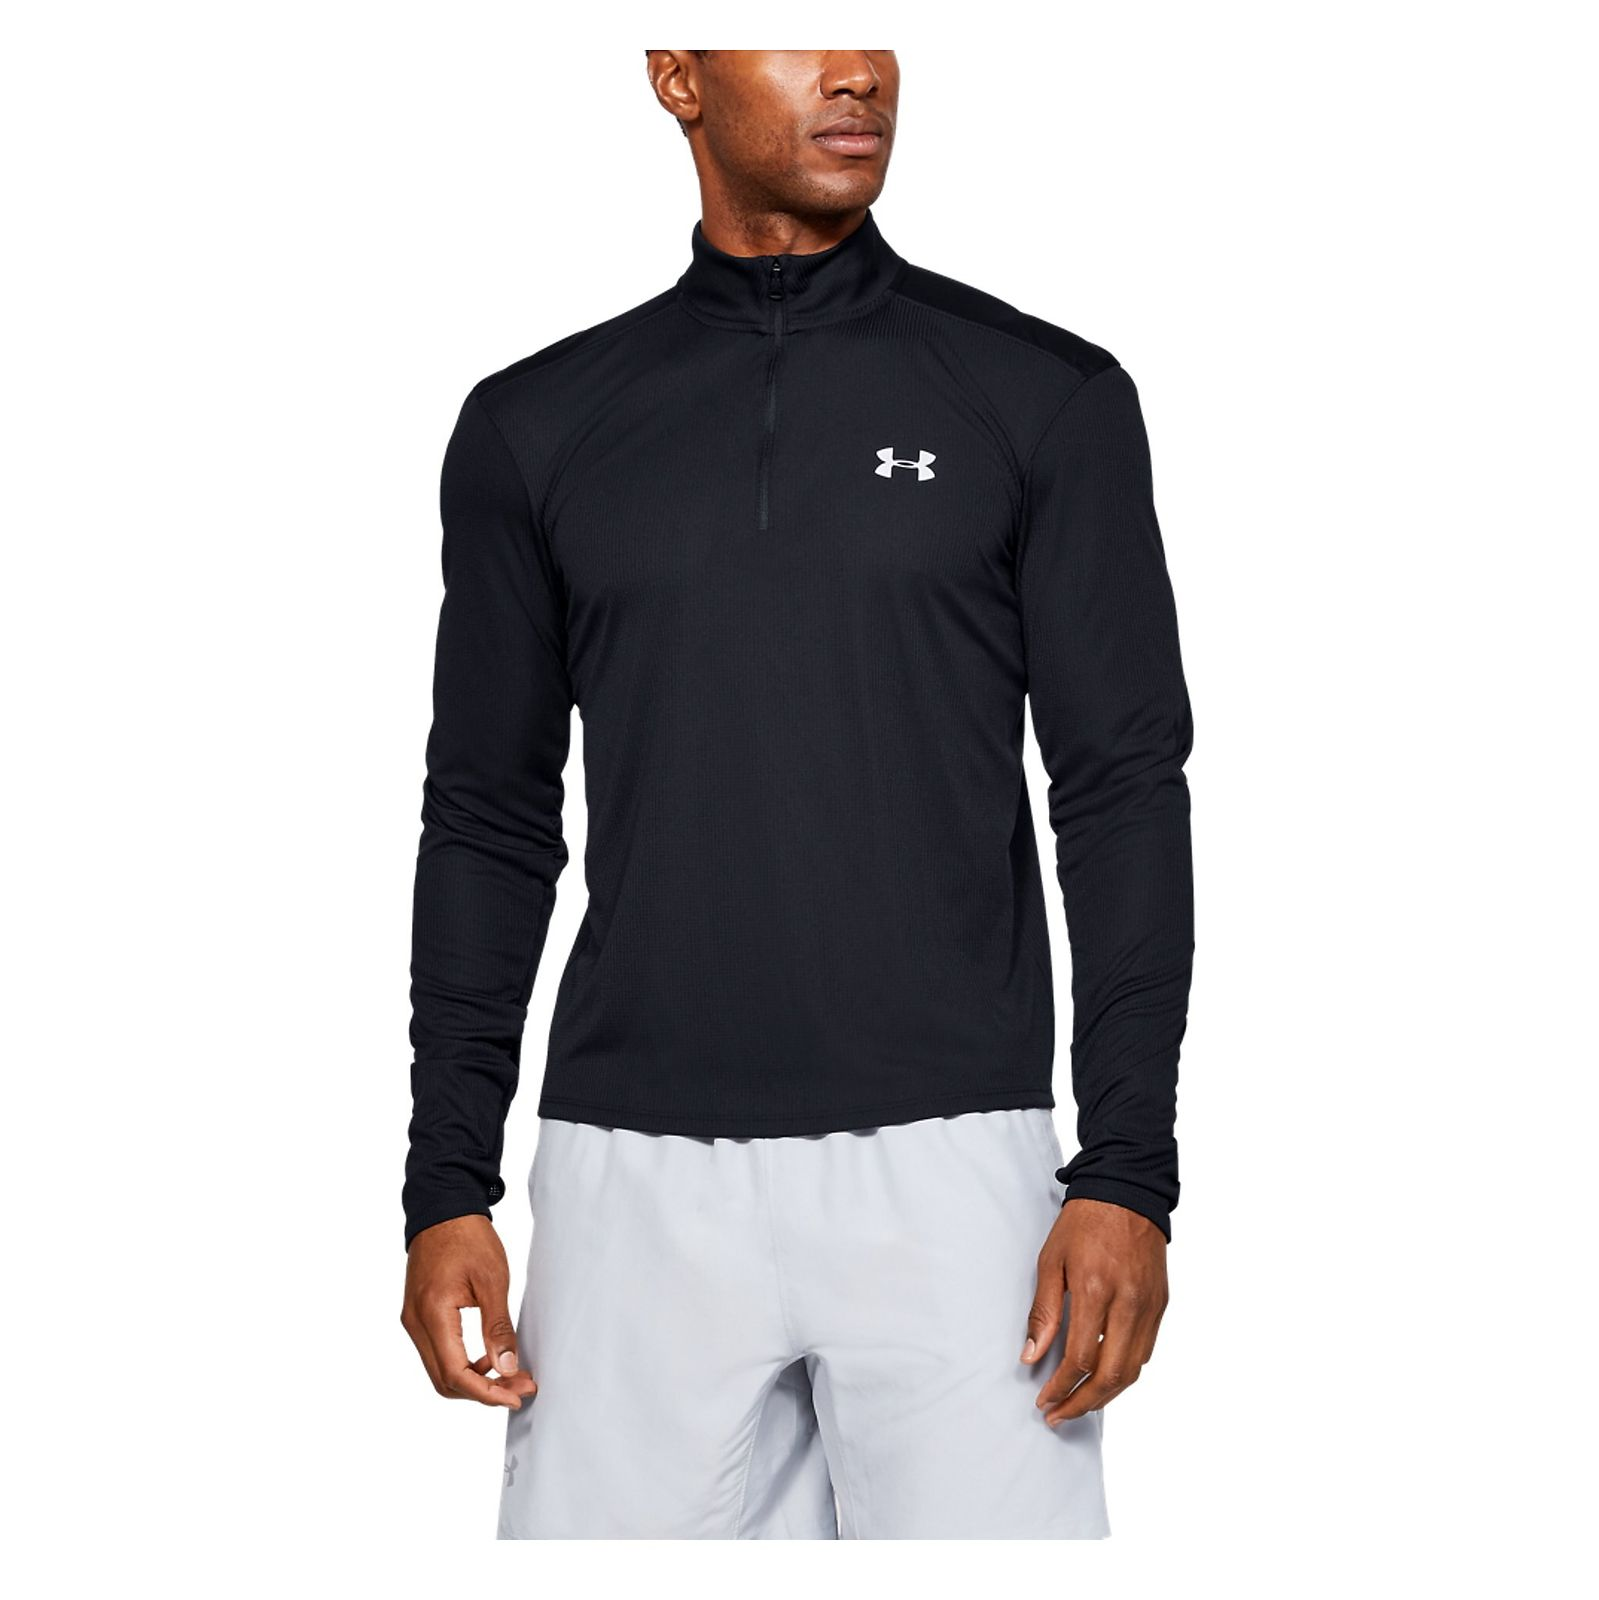 Bluza męska do biegania Under Armour Speed Stride ¼ Zip 1326567